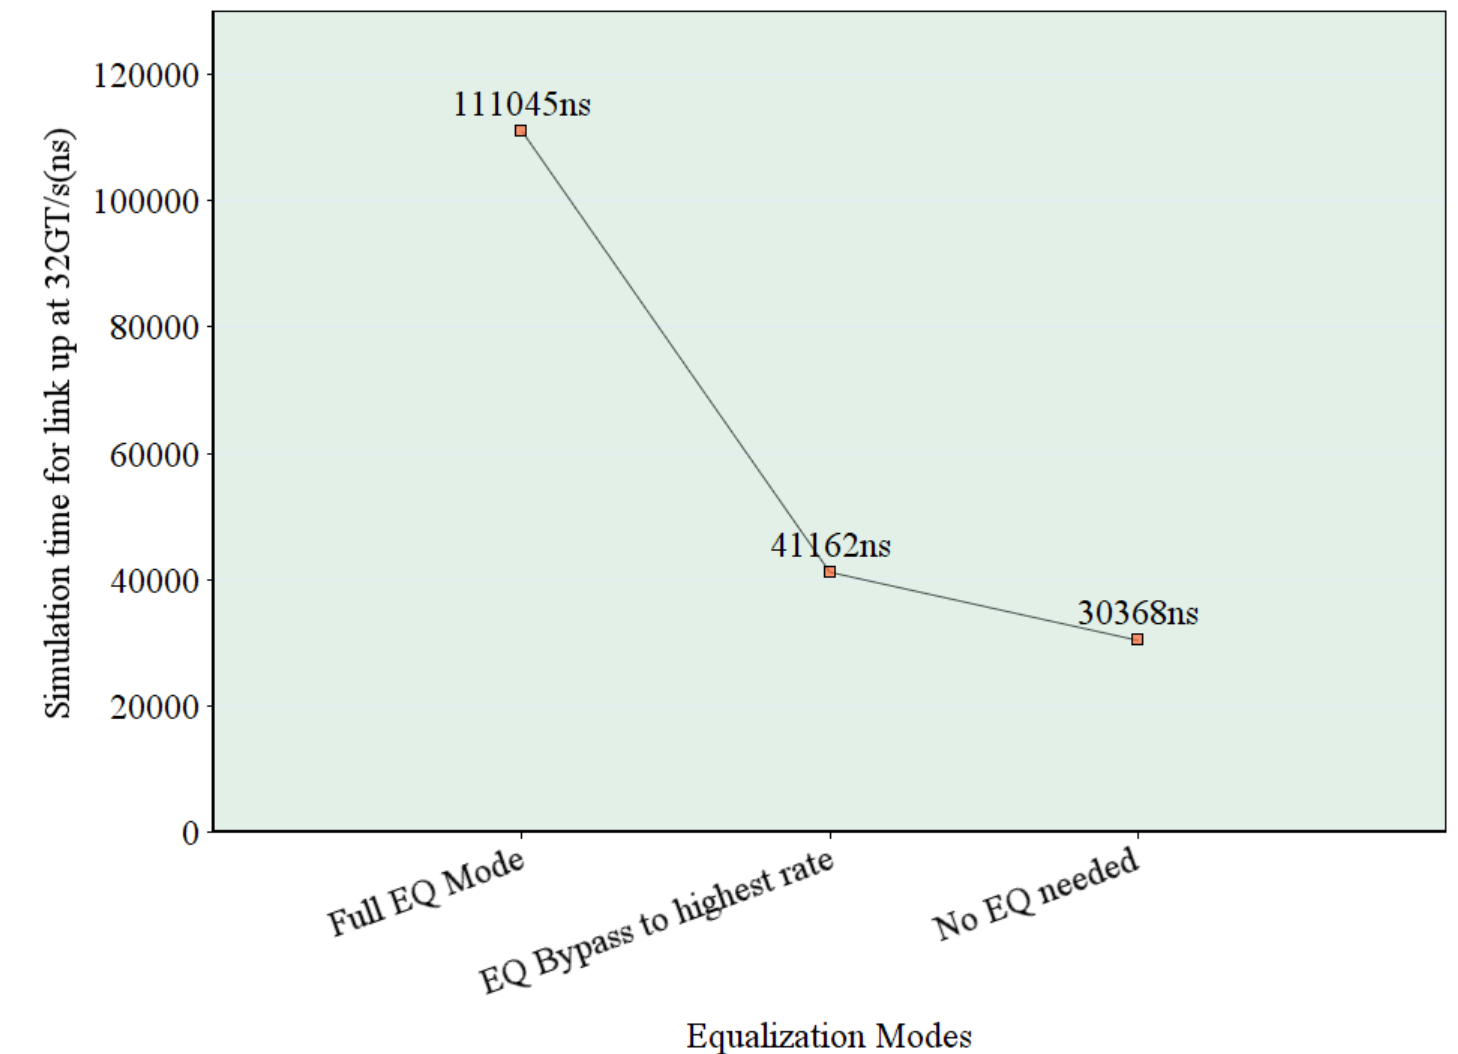 PCIe 5.0 Equalization Modes: Reducing Link Bring-Up Time